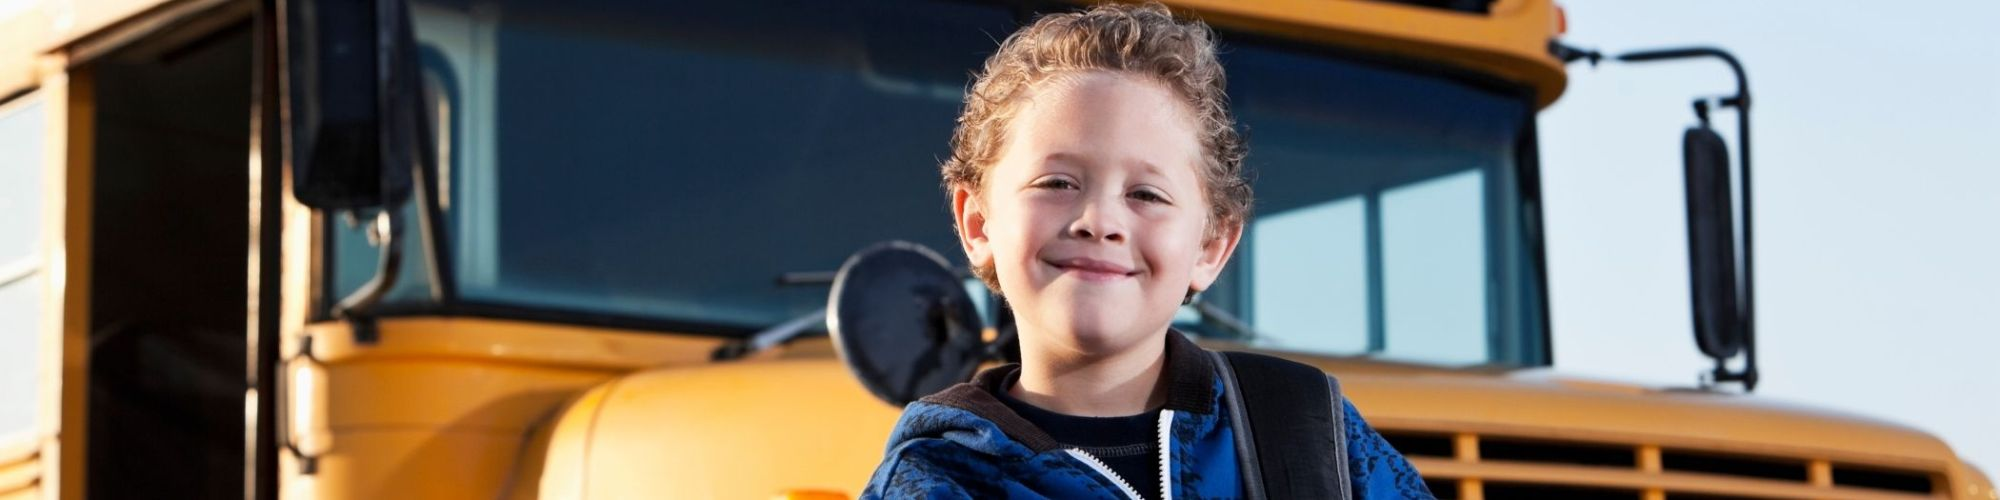 Child posed in front of bus